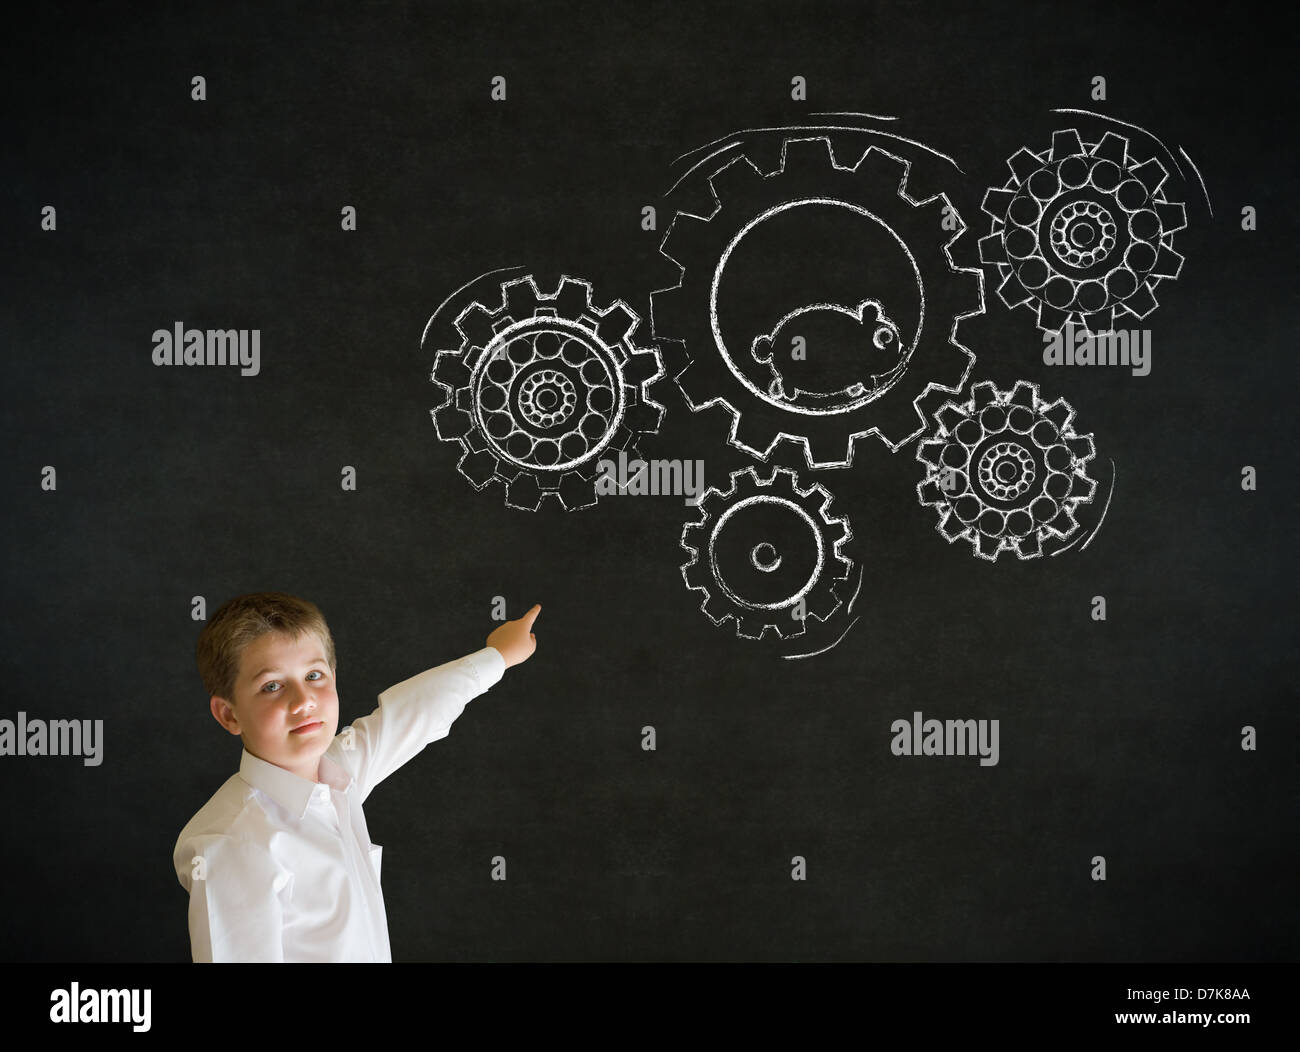 Pointing boy dressed up as business man with chalk turning gear cogs and running hamster on blackboard background - Stock Image